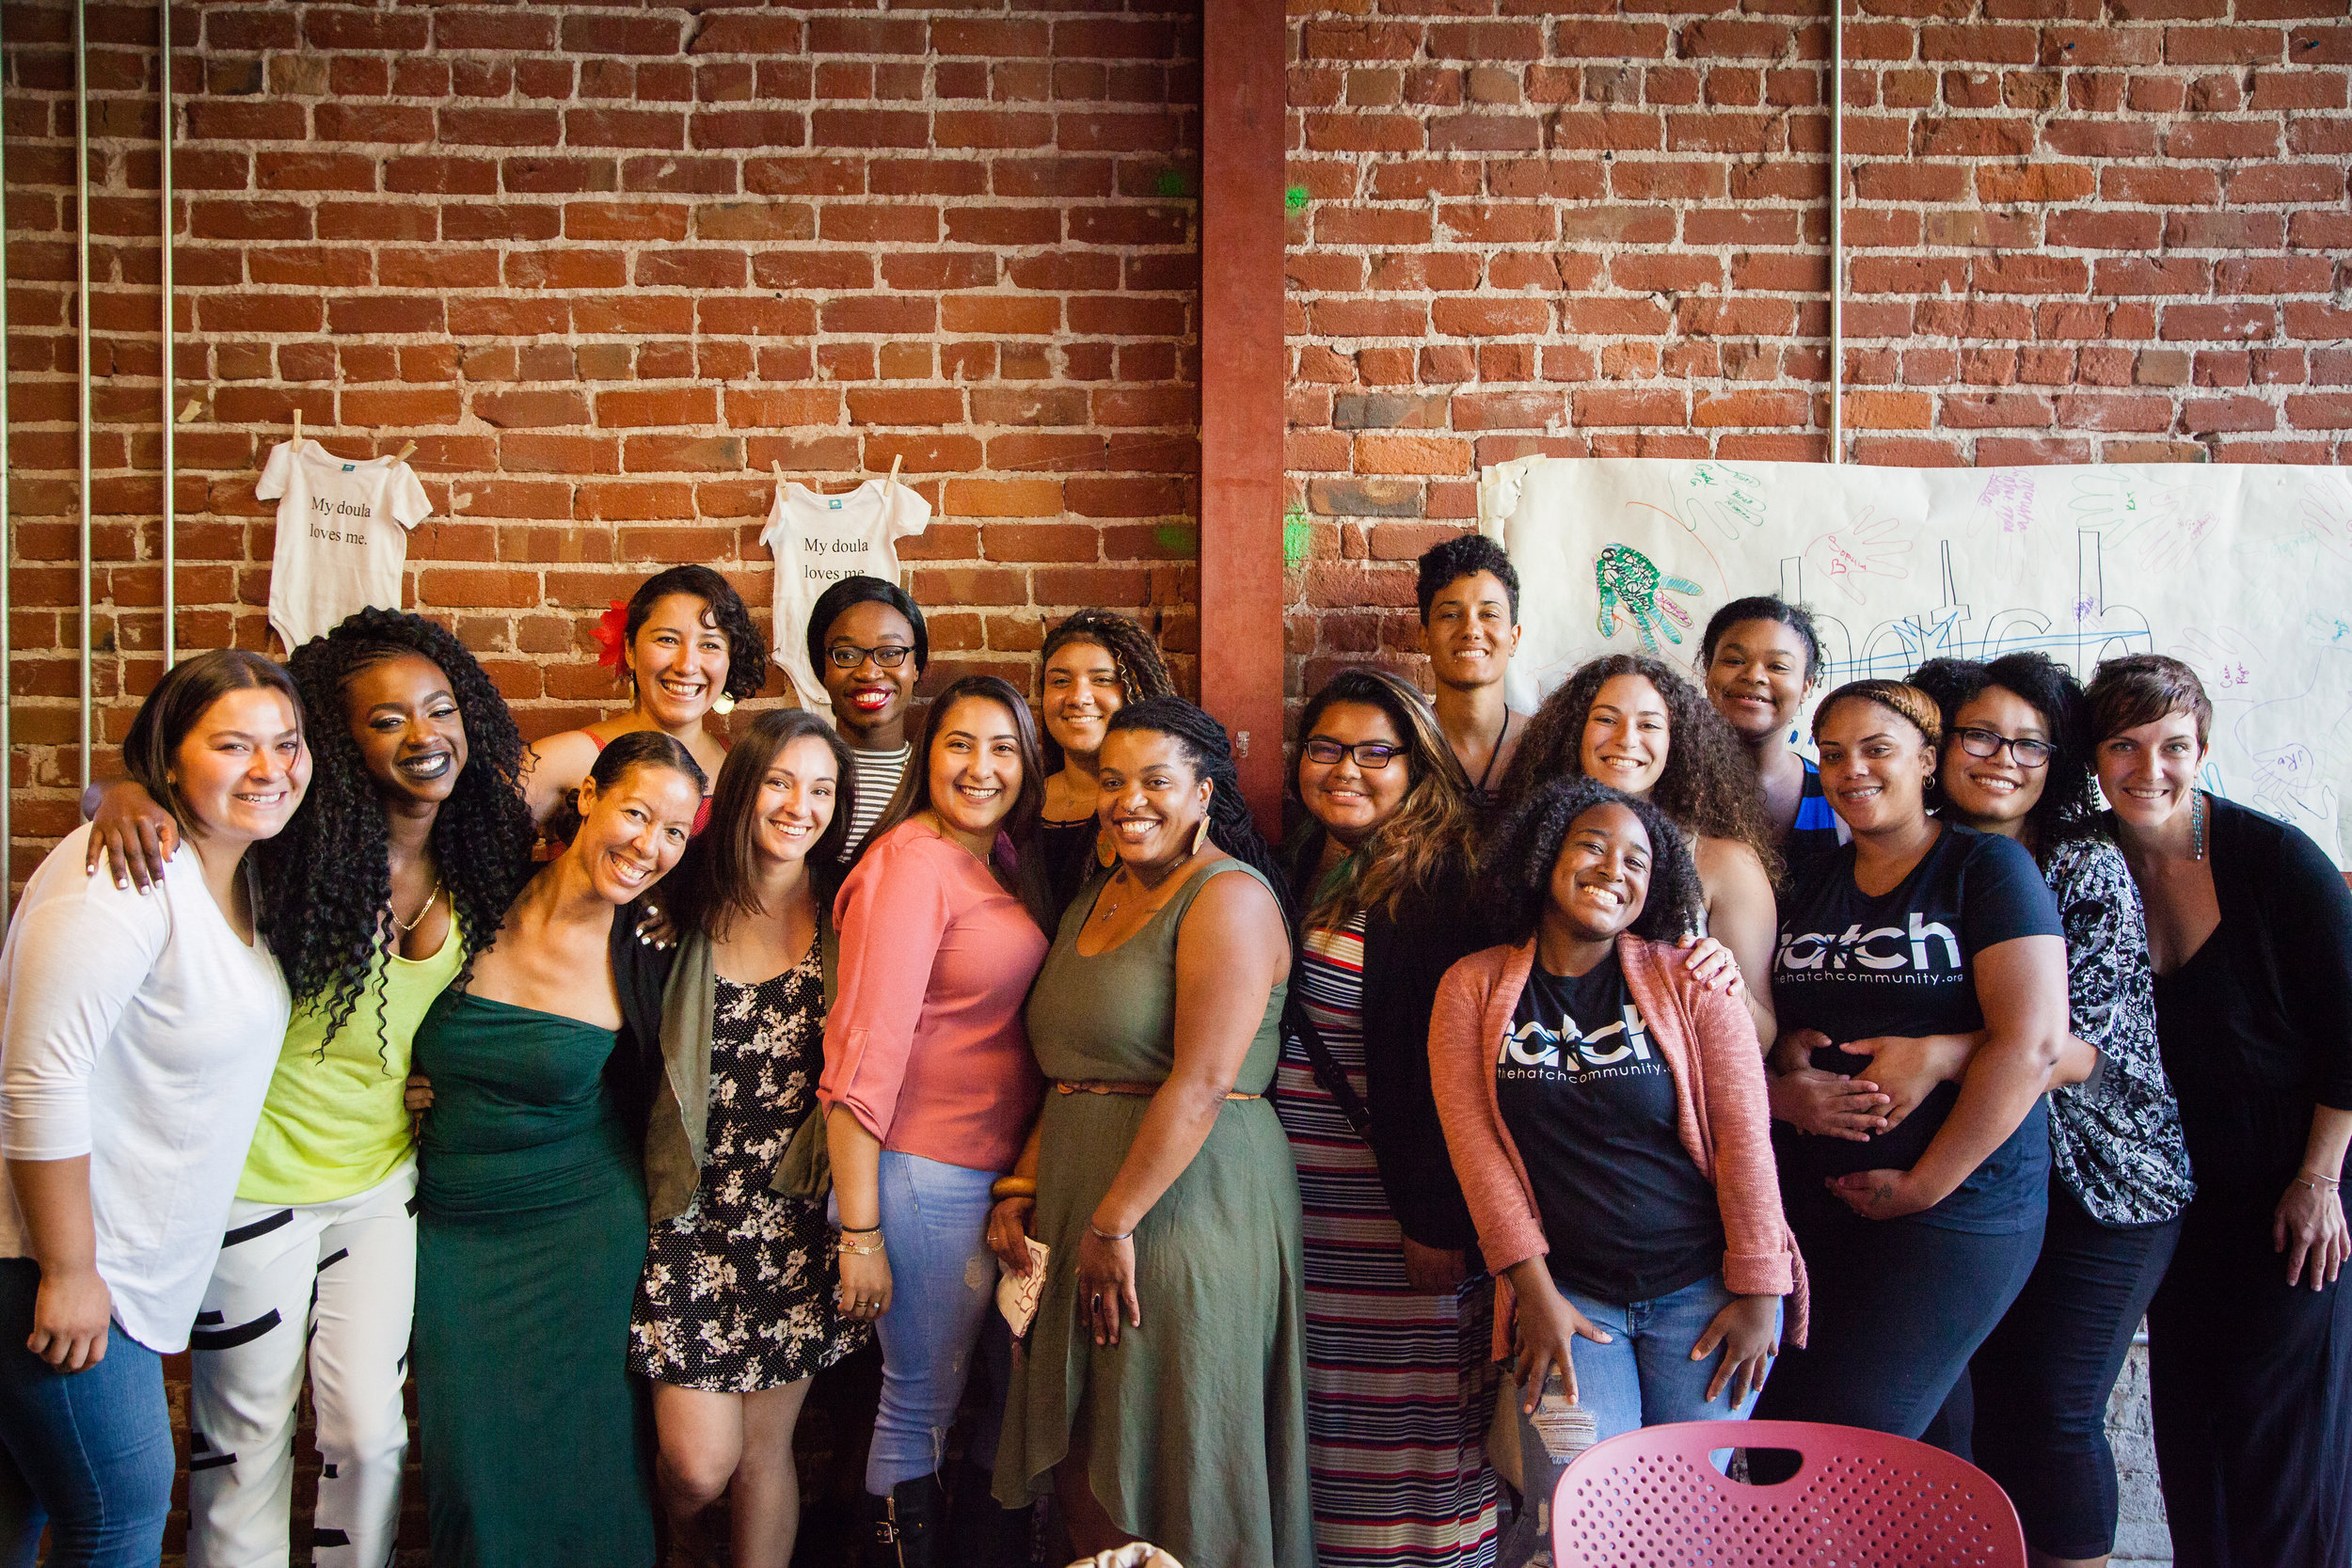 Congratulations to Hatch's 2nd year of doula graduates with their completion of the 2016-2017 Birth & Postpartum Program and celebration in June!